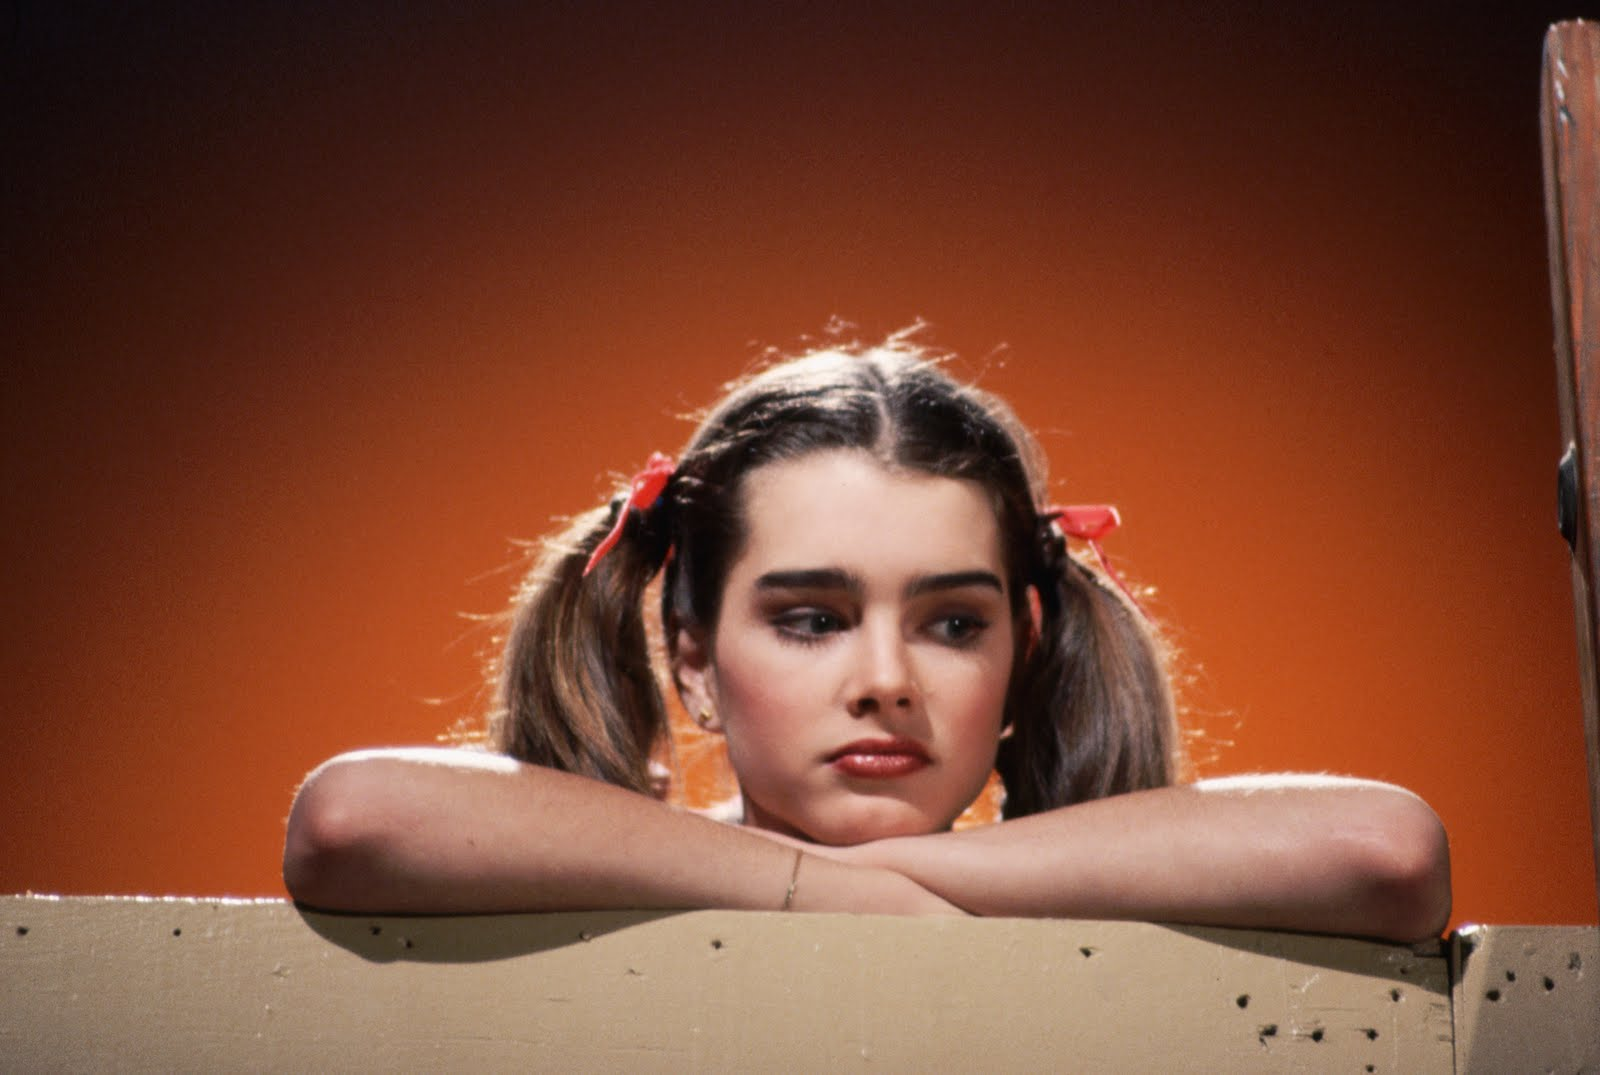 Brooke Shields Was Quite The Pretty Baby In Pigtails As A Young Teen